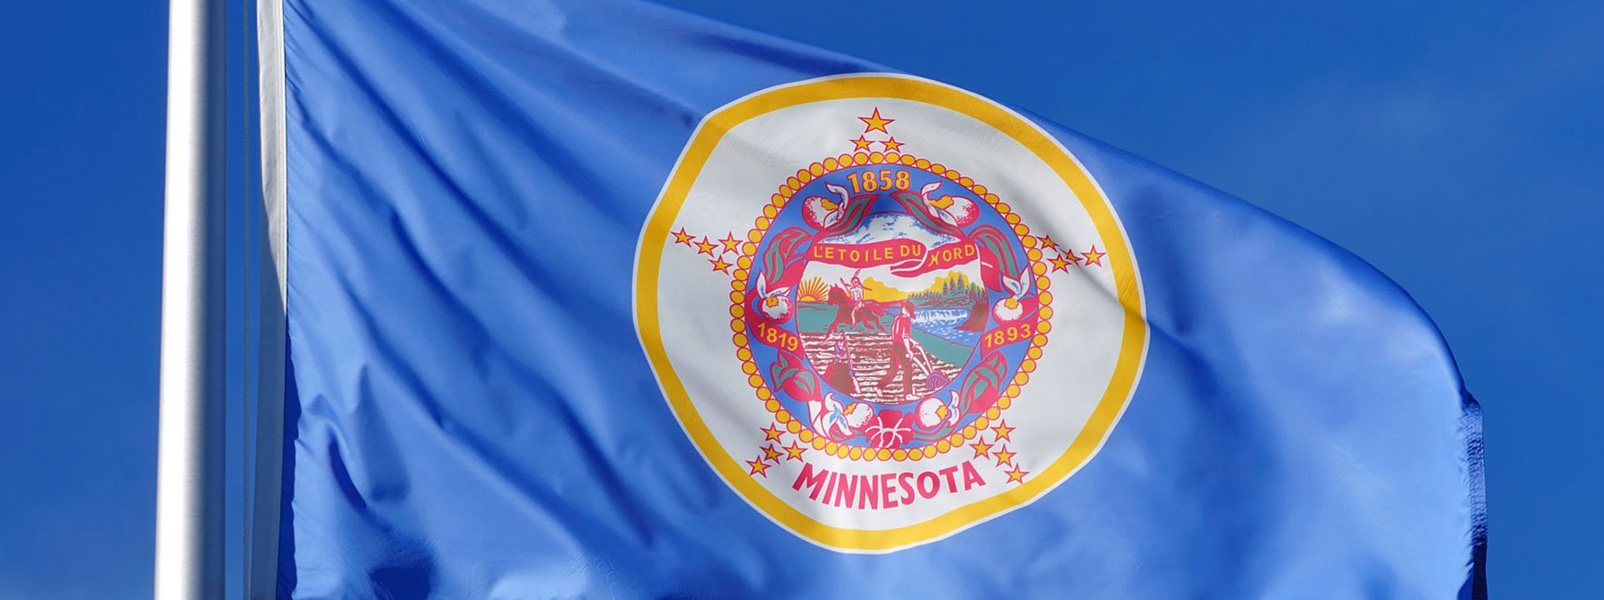 MINNESOTA BECOMES 40th STATE TO LEGALIZE SUPPRESSORS